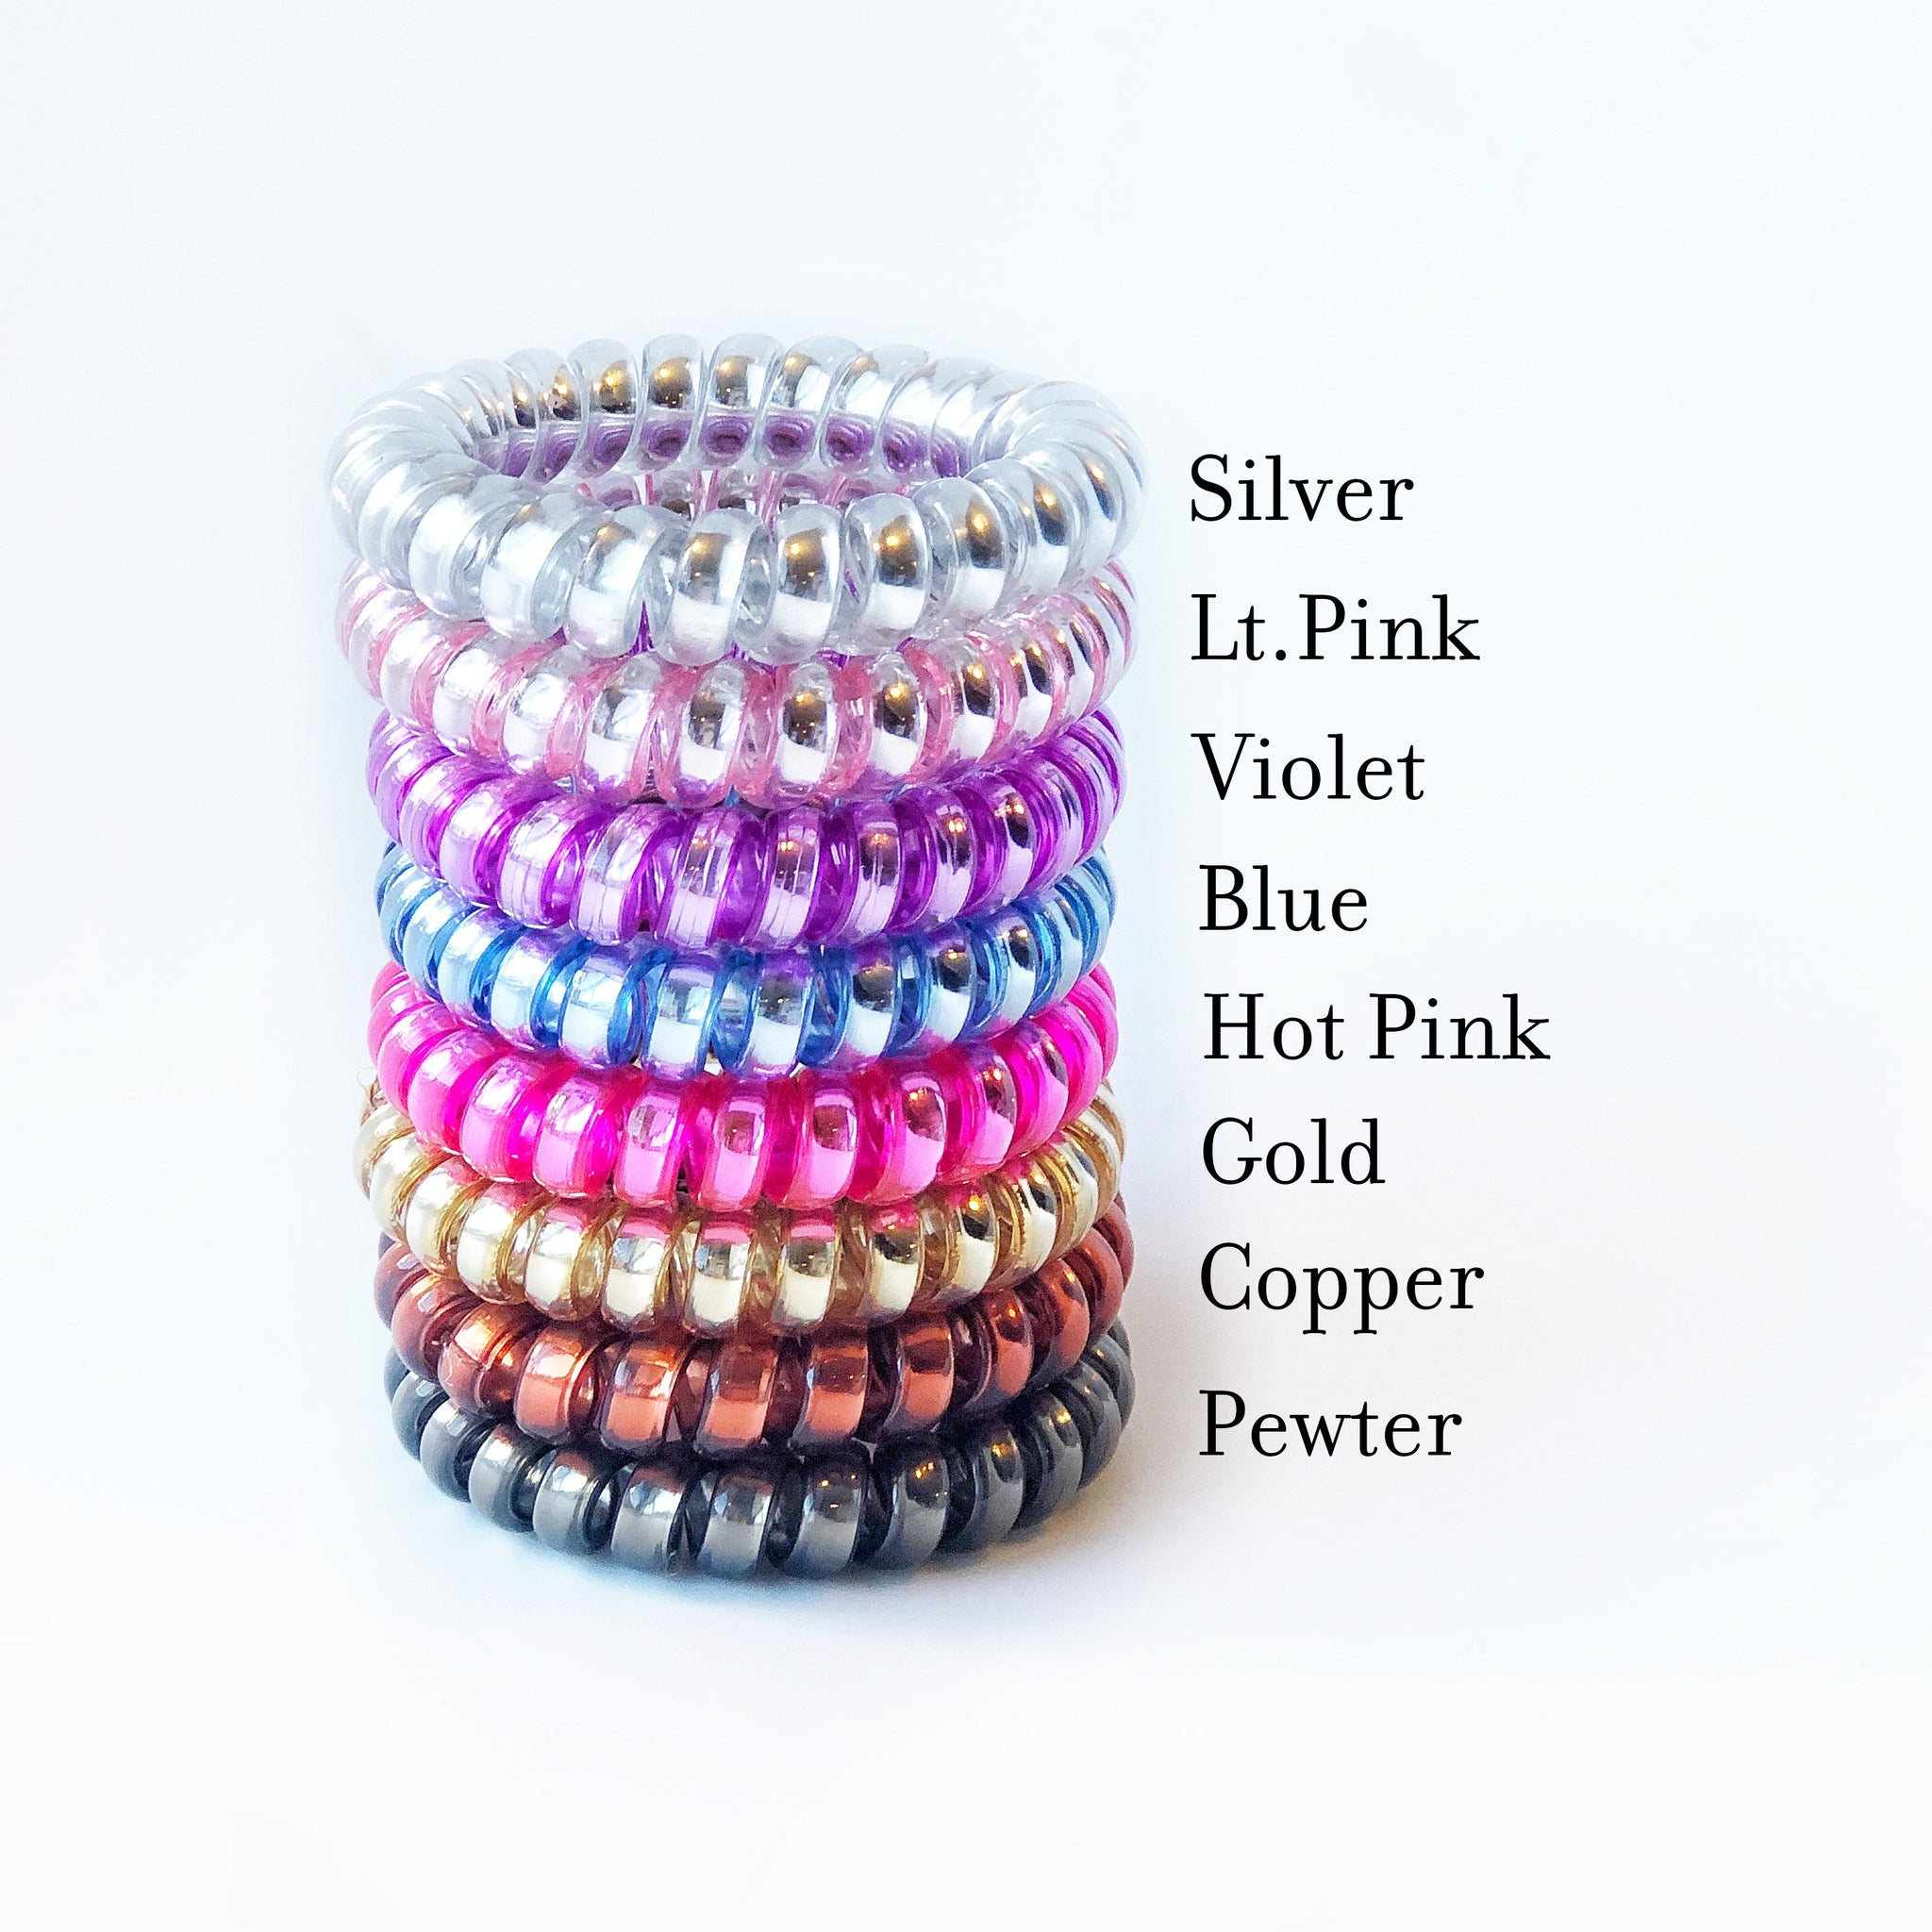 Movie Night Party Favors, Spiral Hair Ties, Movie Birthday Party Favors - @PlumPolkaDot